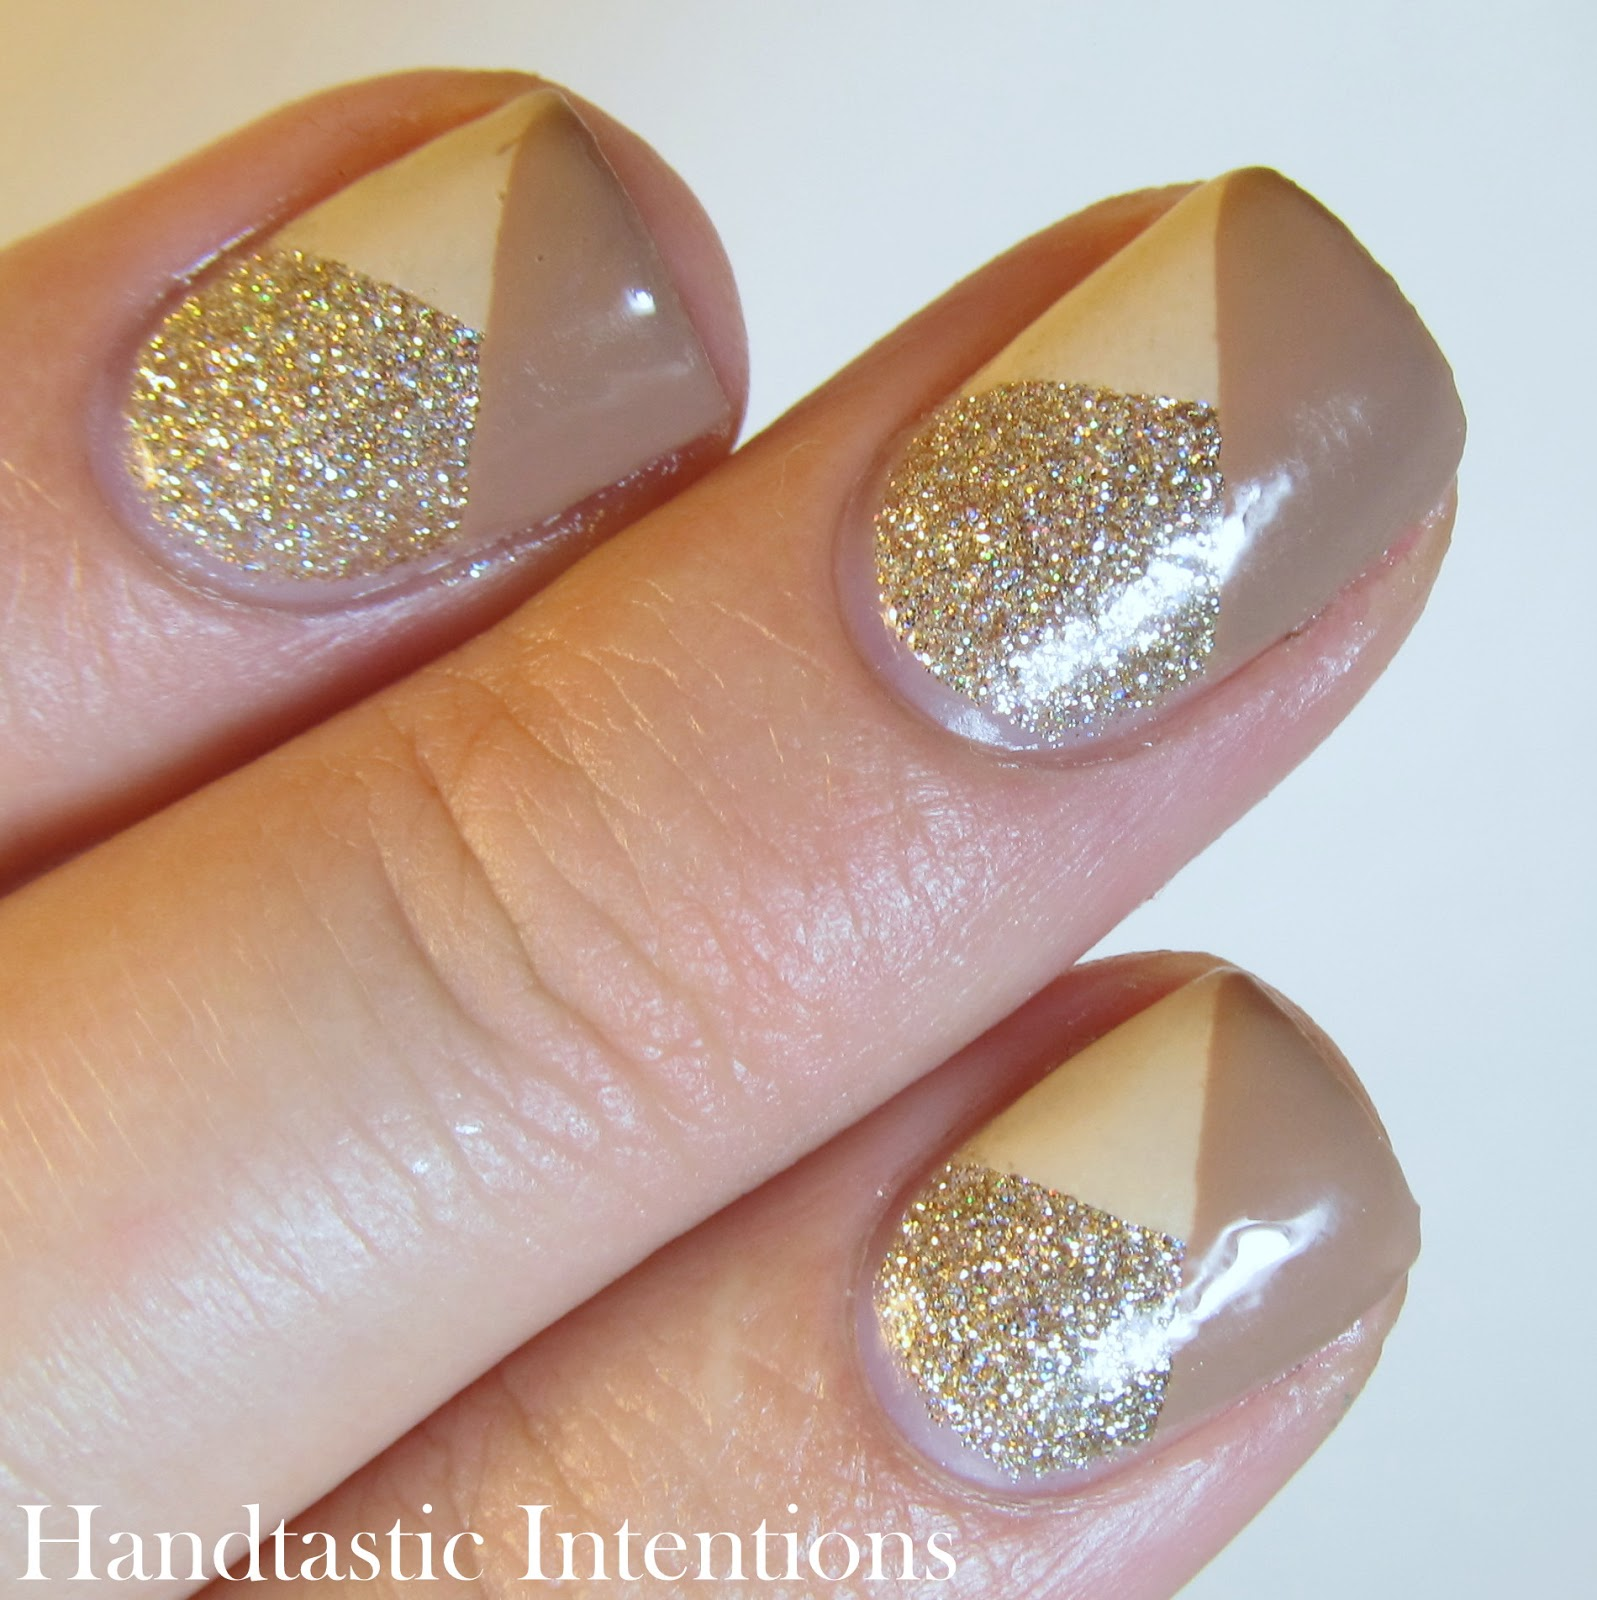 Nail Art Using Painters Tape: Handtastic Intentions: Work Wear Wednesdays: Inspired By